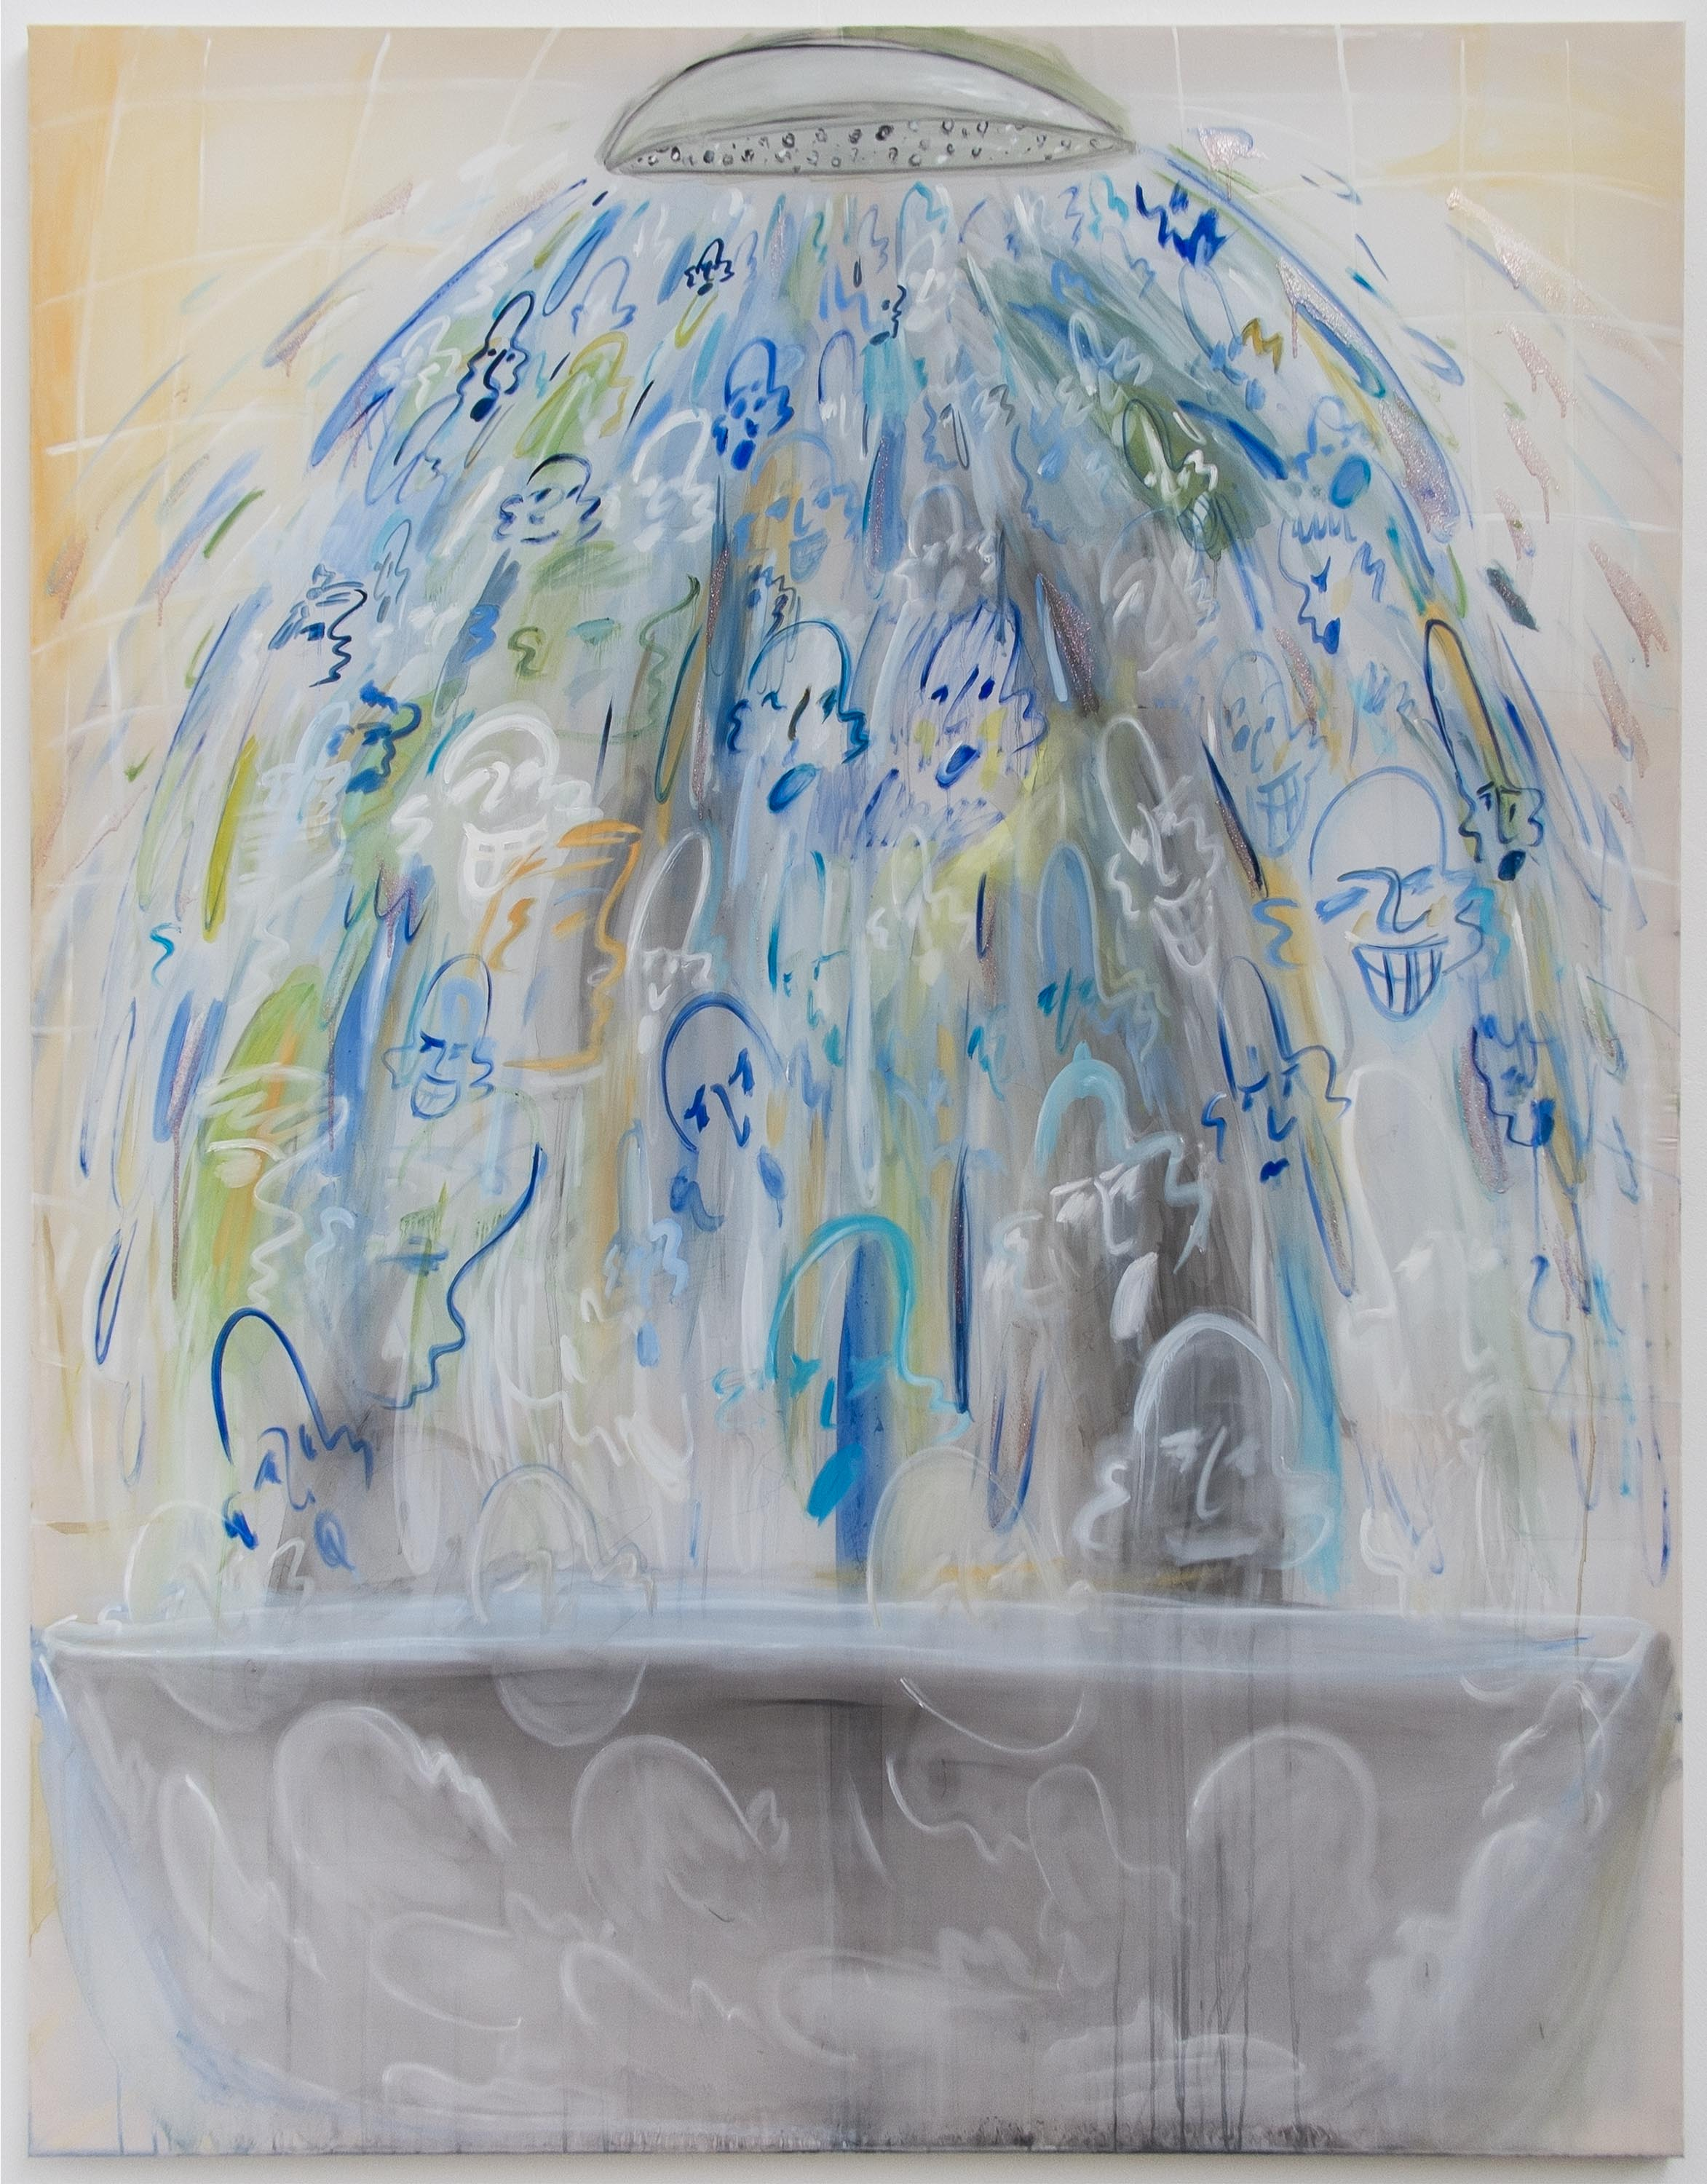 Fear Of Orange Water  180 x 140 cm  Oil, Silicone, Glitter on Transparent Fabric